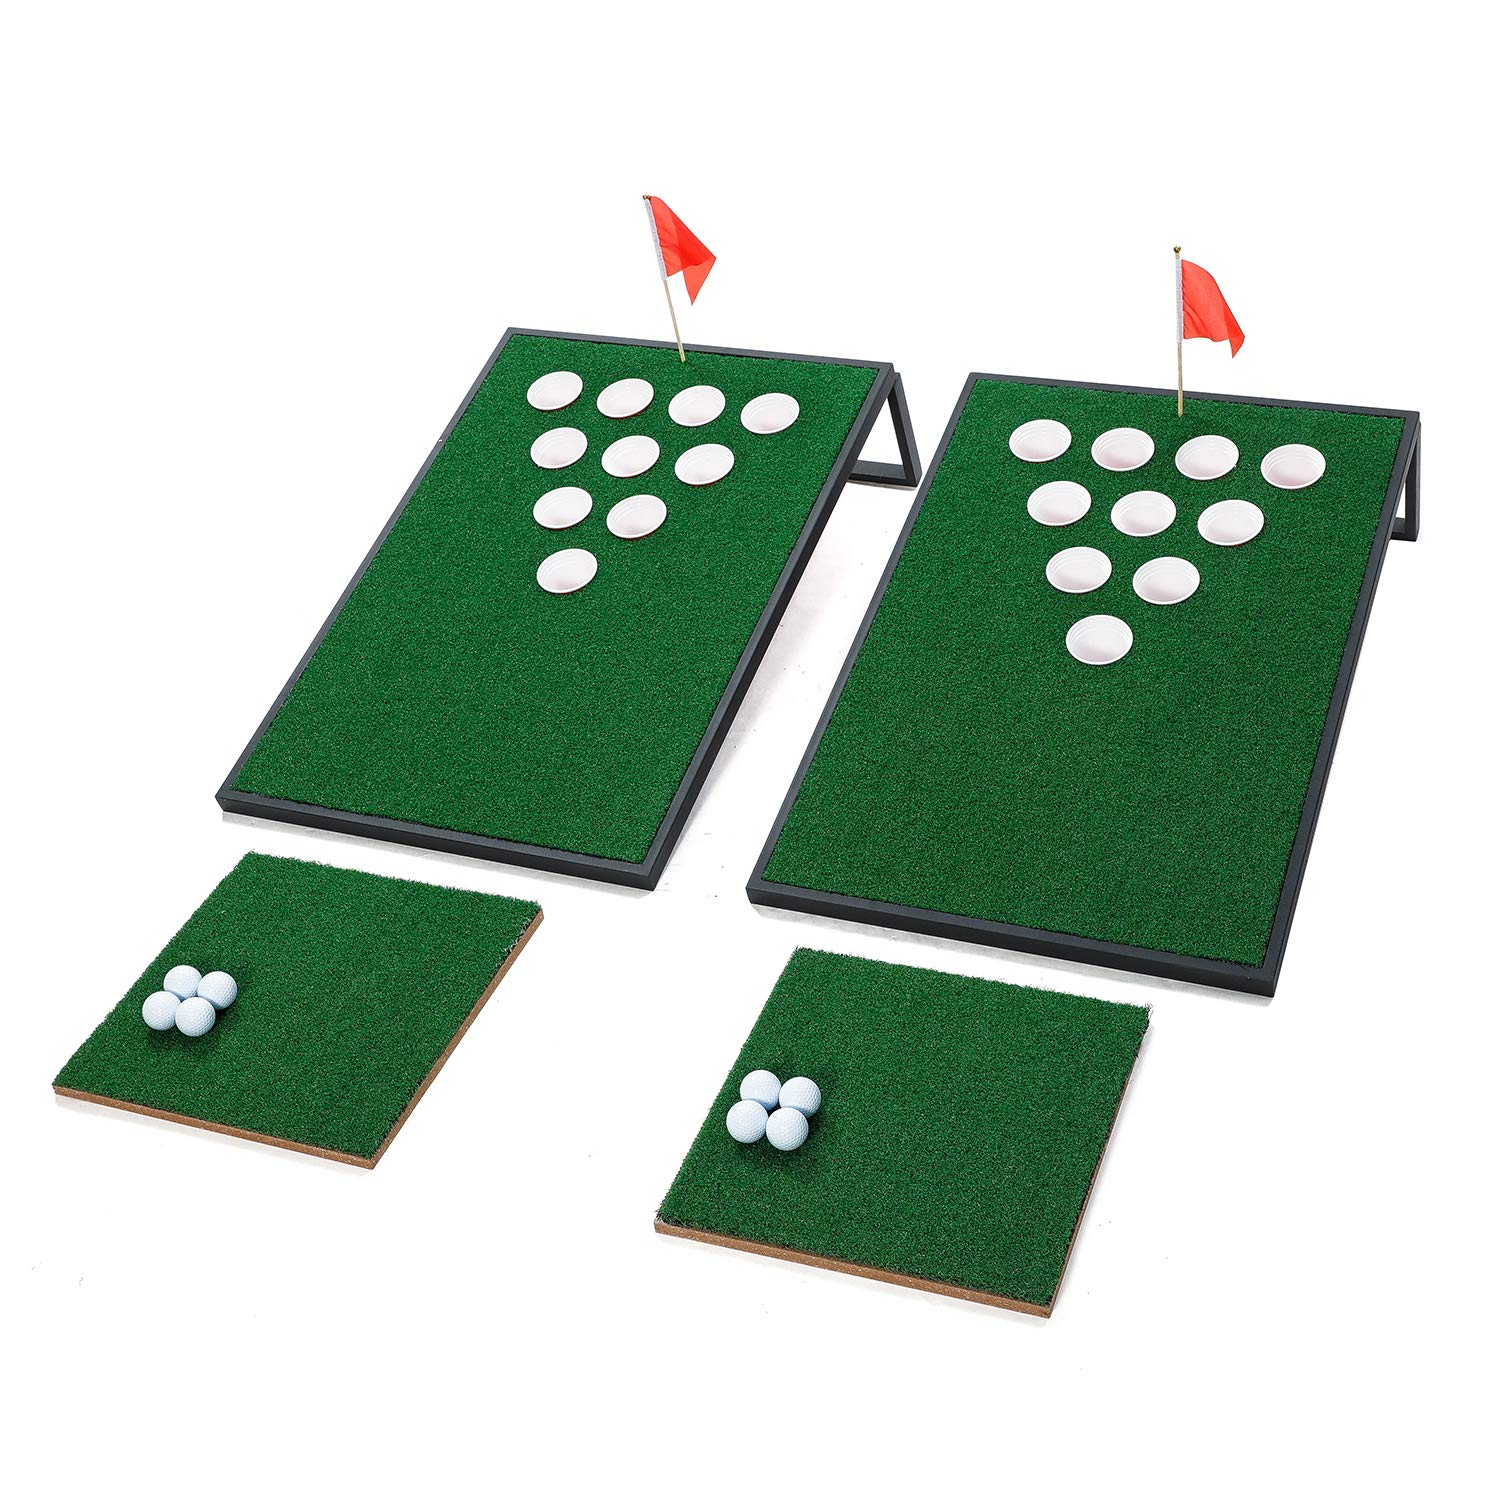 OOFIT Golf Pong Iron Frame Cornhole Set with Chipping Mats, Black